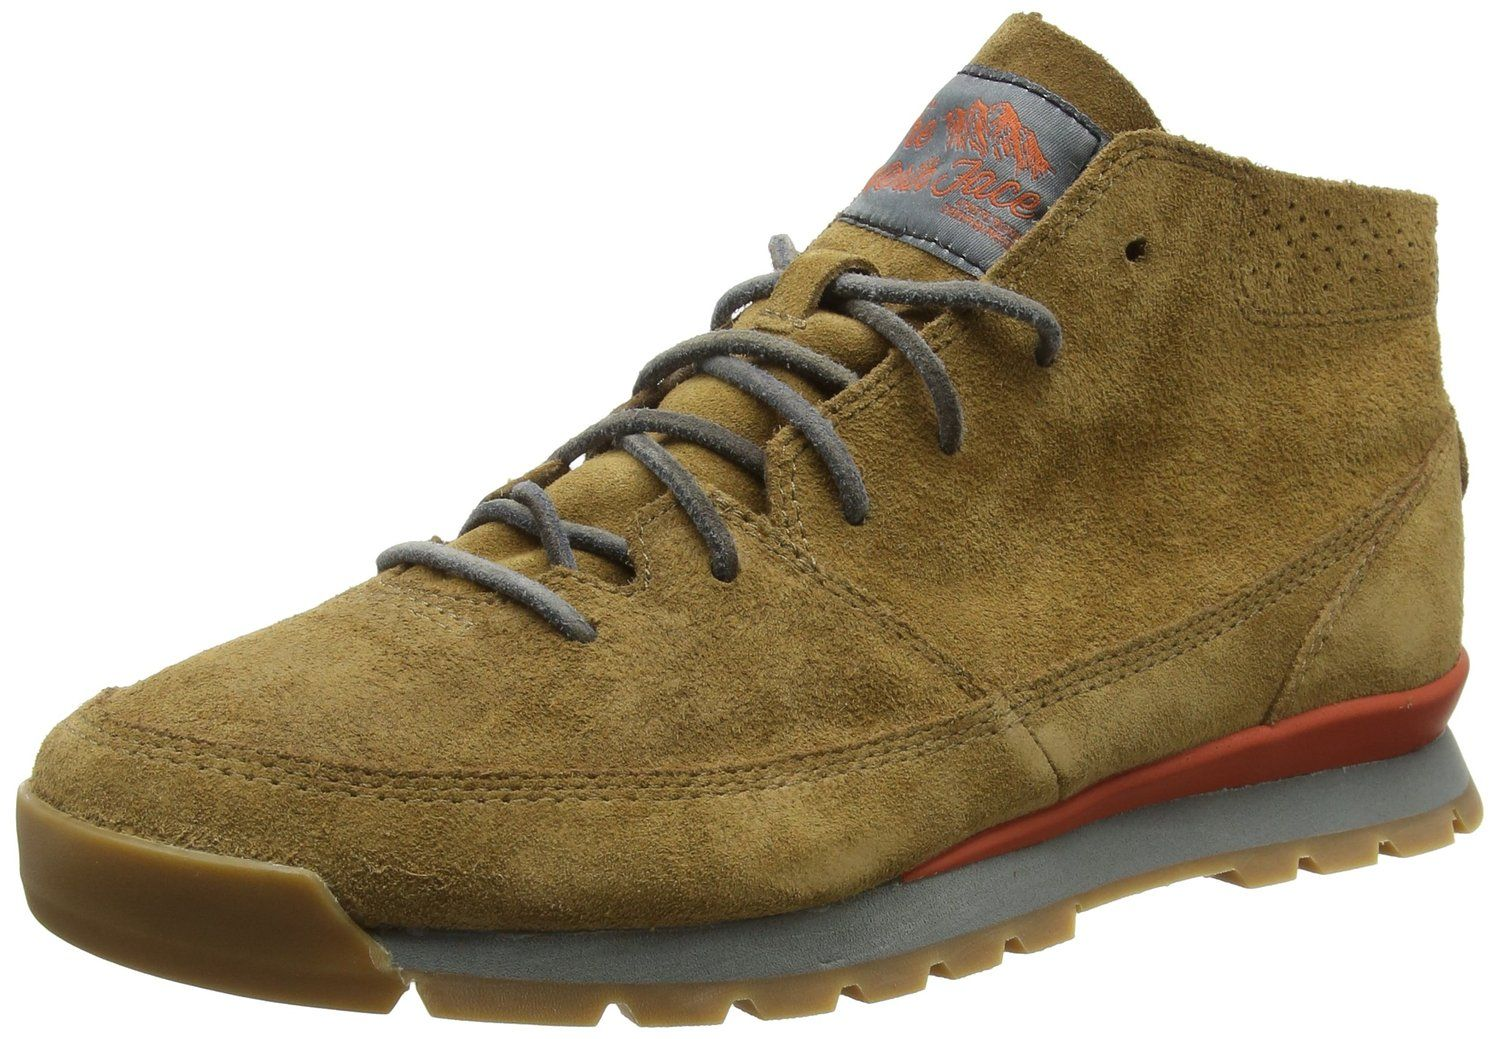 172538b4702a9 The North Face Men's Back-To-Berkeley Redux Chukka Boots: Amazon.co ...